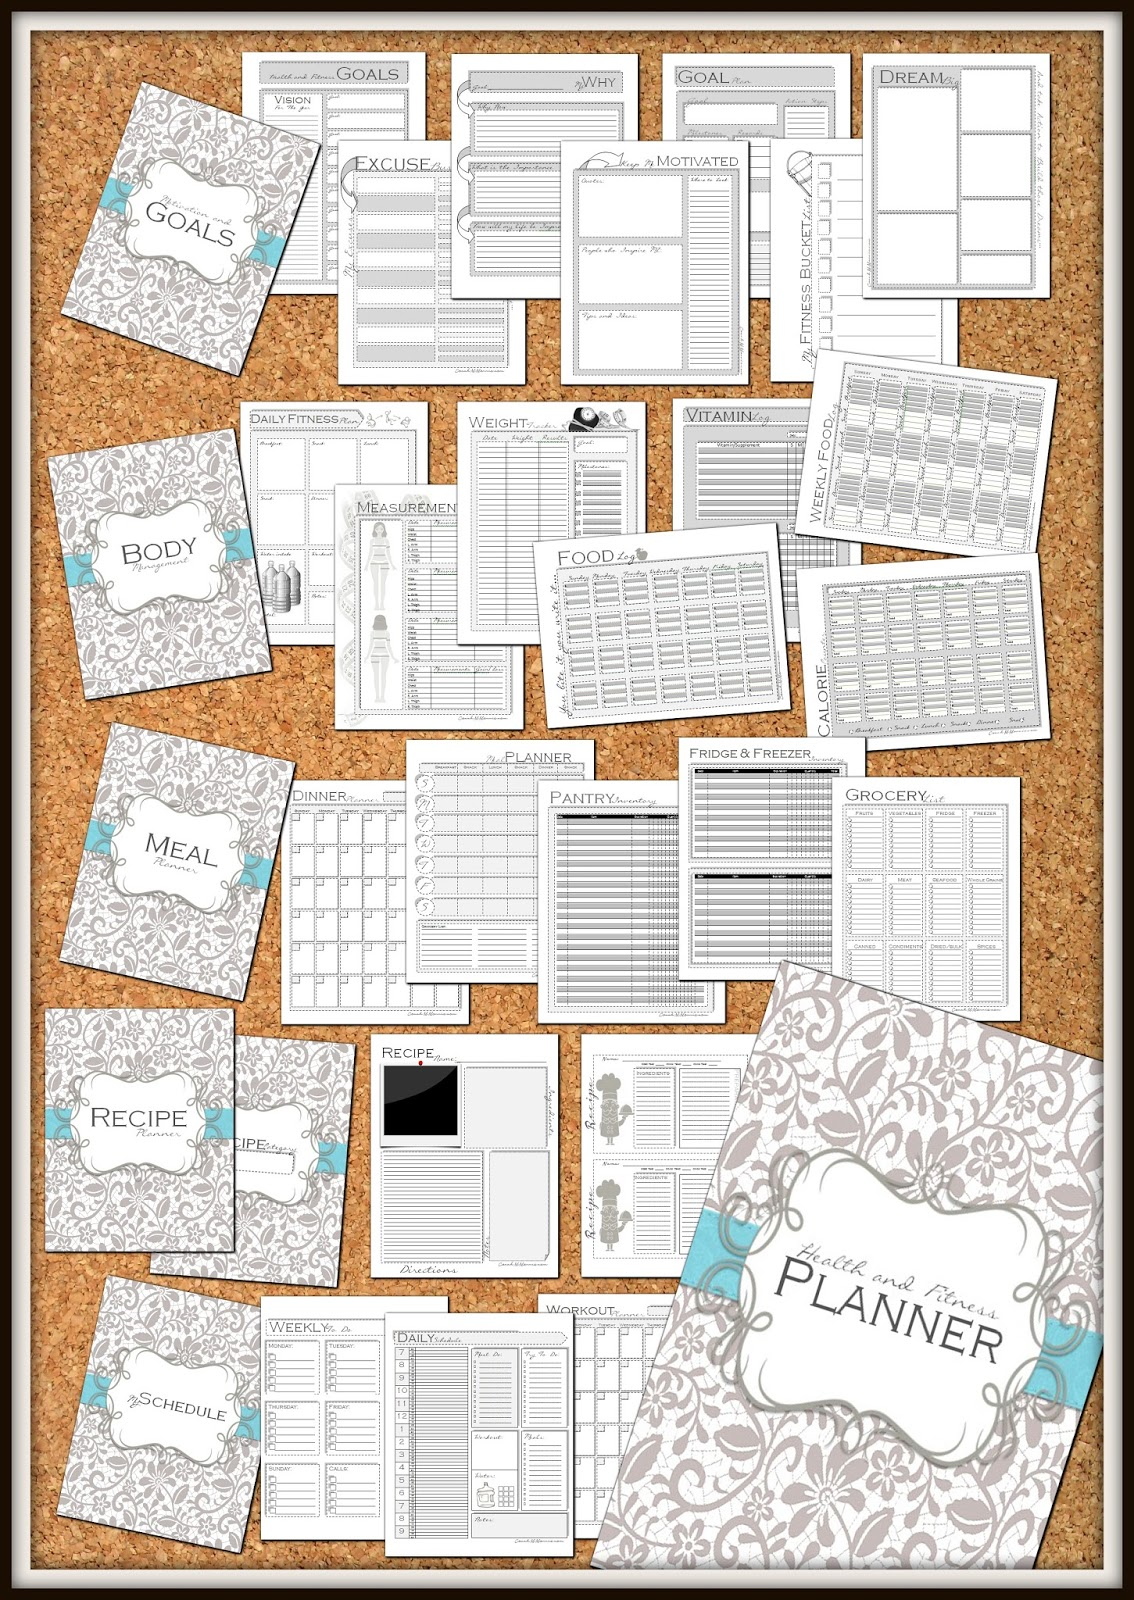 Plan To Succeed Planner Giveaway